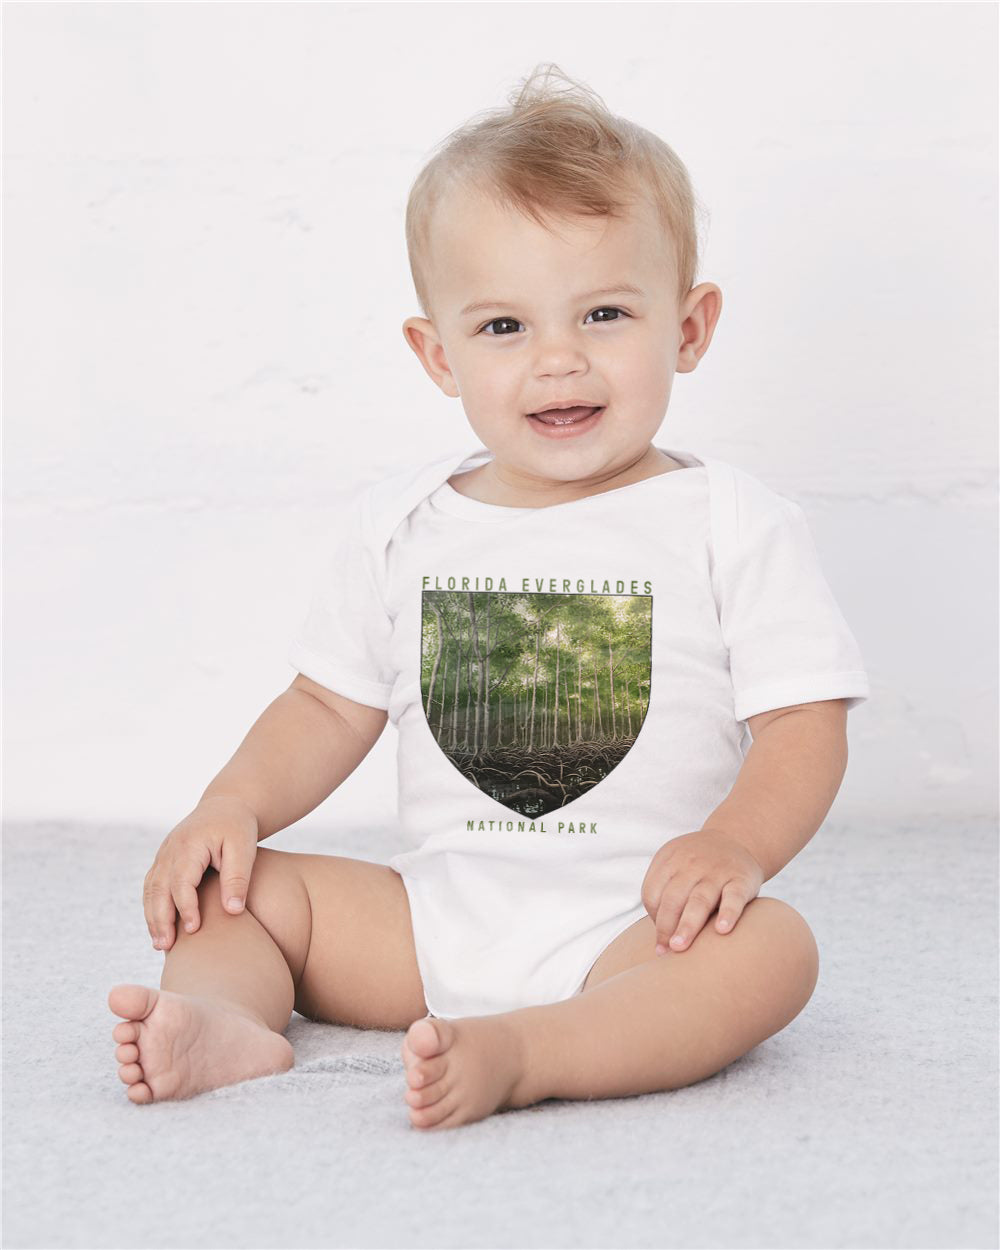 Florida Everglades National Park Baby Cozy Graphic Tee Onesie in White